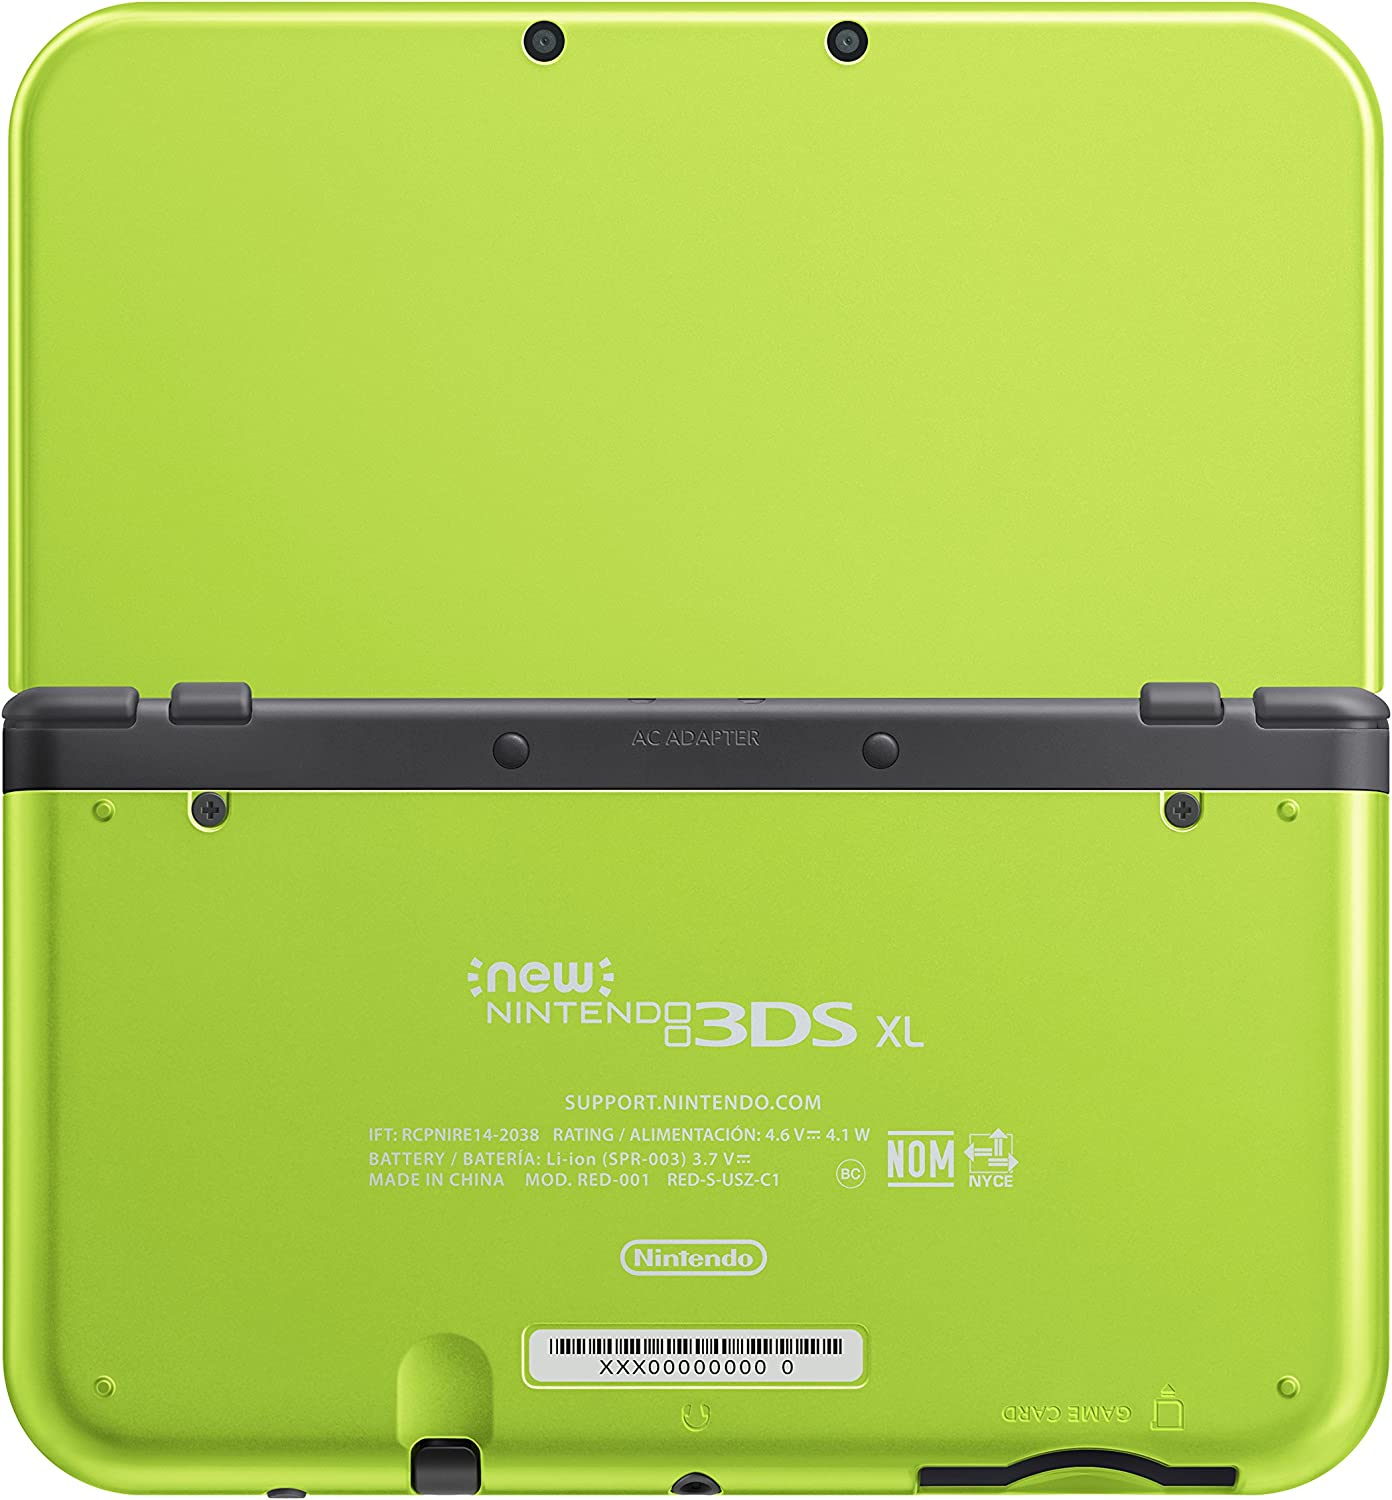 Amazoncom Nintendo New DS XL Special Edition Lime Green - Us zip code nintendo